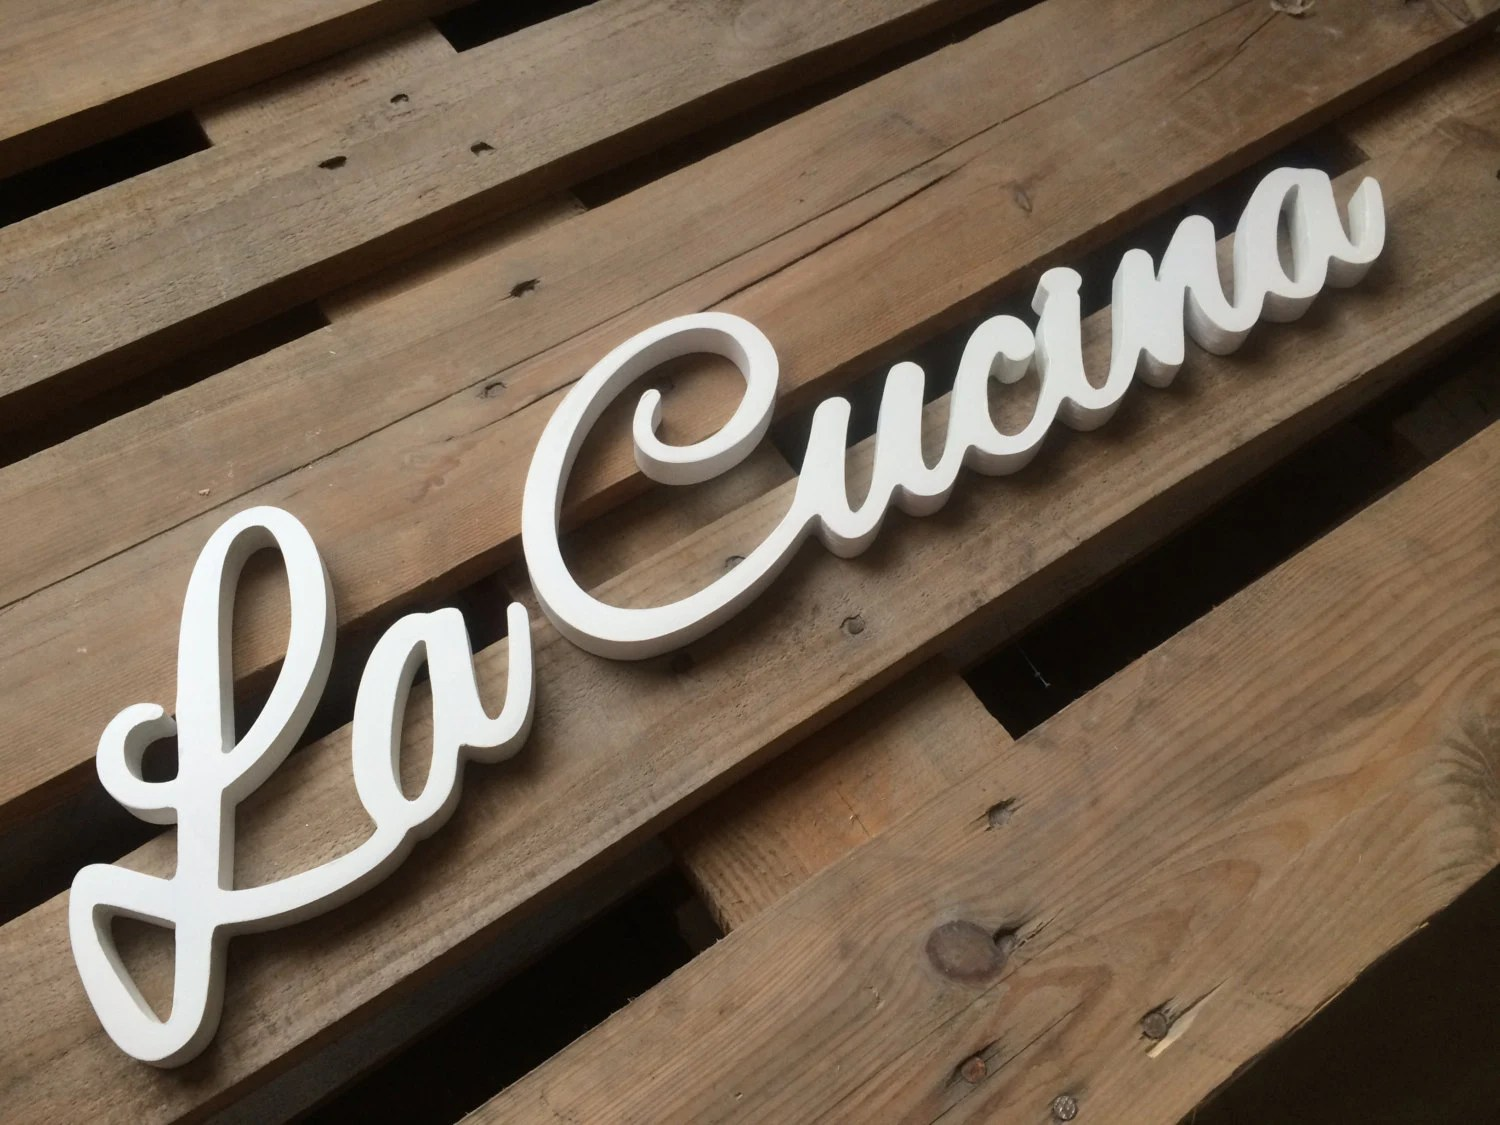 Cucina Kitchen Sign Modern Kitchen Decor Cottage Chic Decorating Ideas La Cucina Italian Word For The Kitchen Wood Sign Wall Decor Italia Kitchen Sign